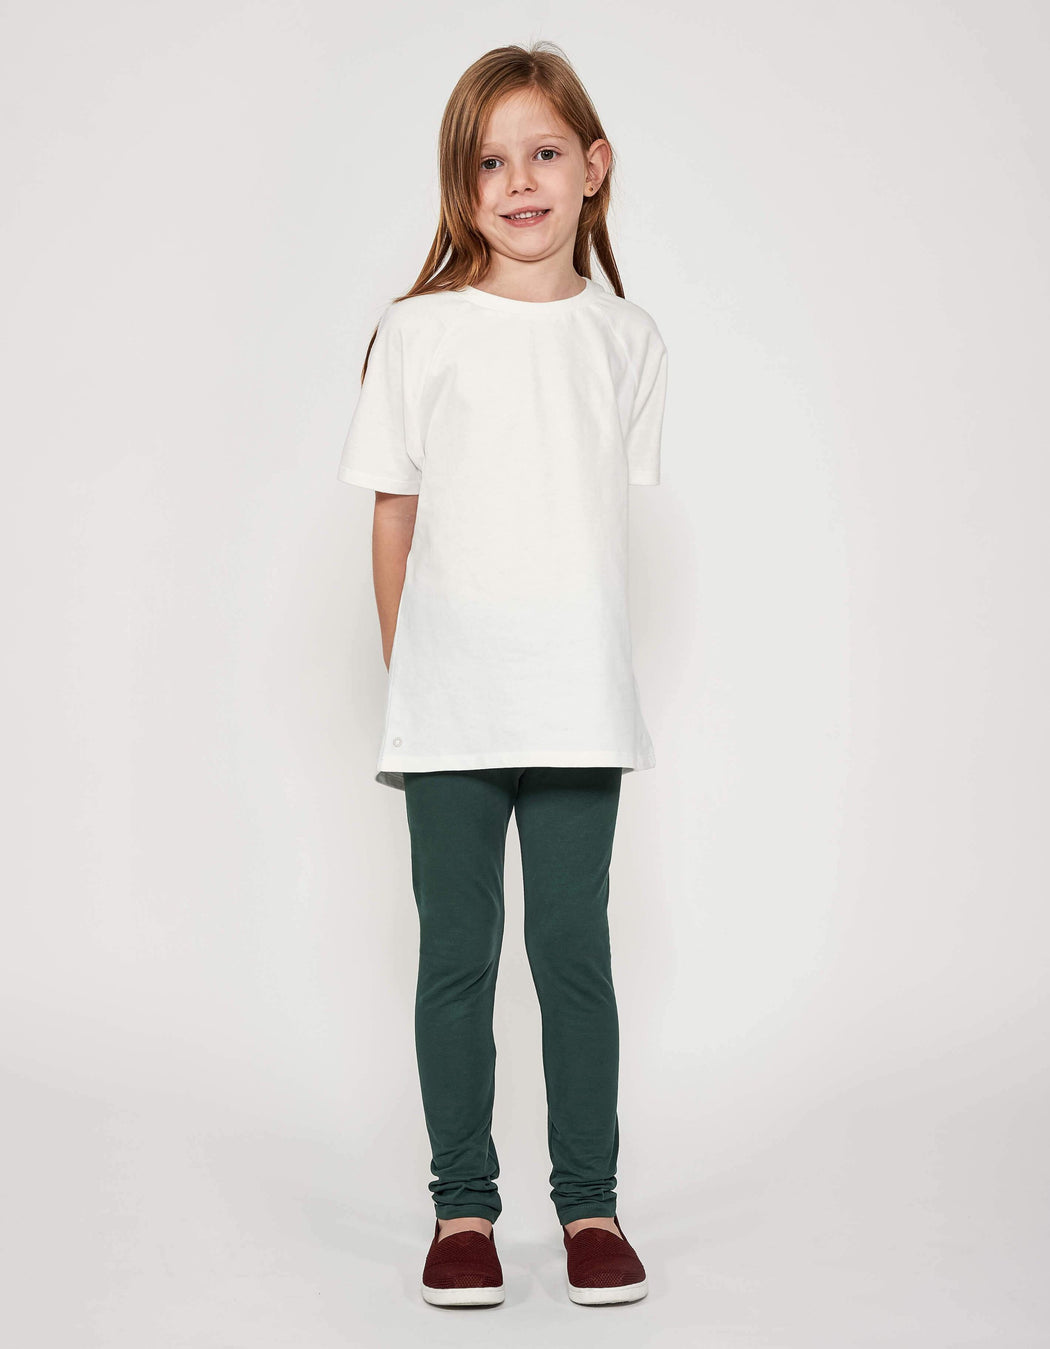 The Luxury Tee - Cloud White | T-shirts & Tops | ORBASICS | [product_tag] - Fair Bazaar Ethical Living